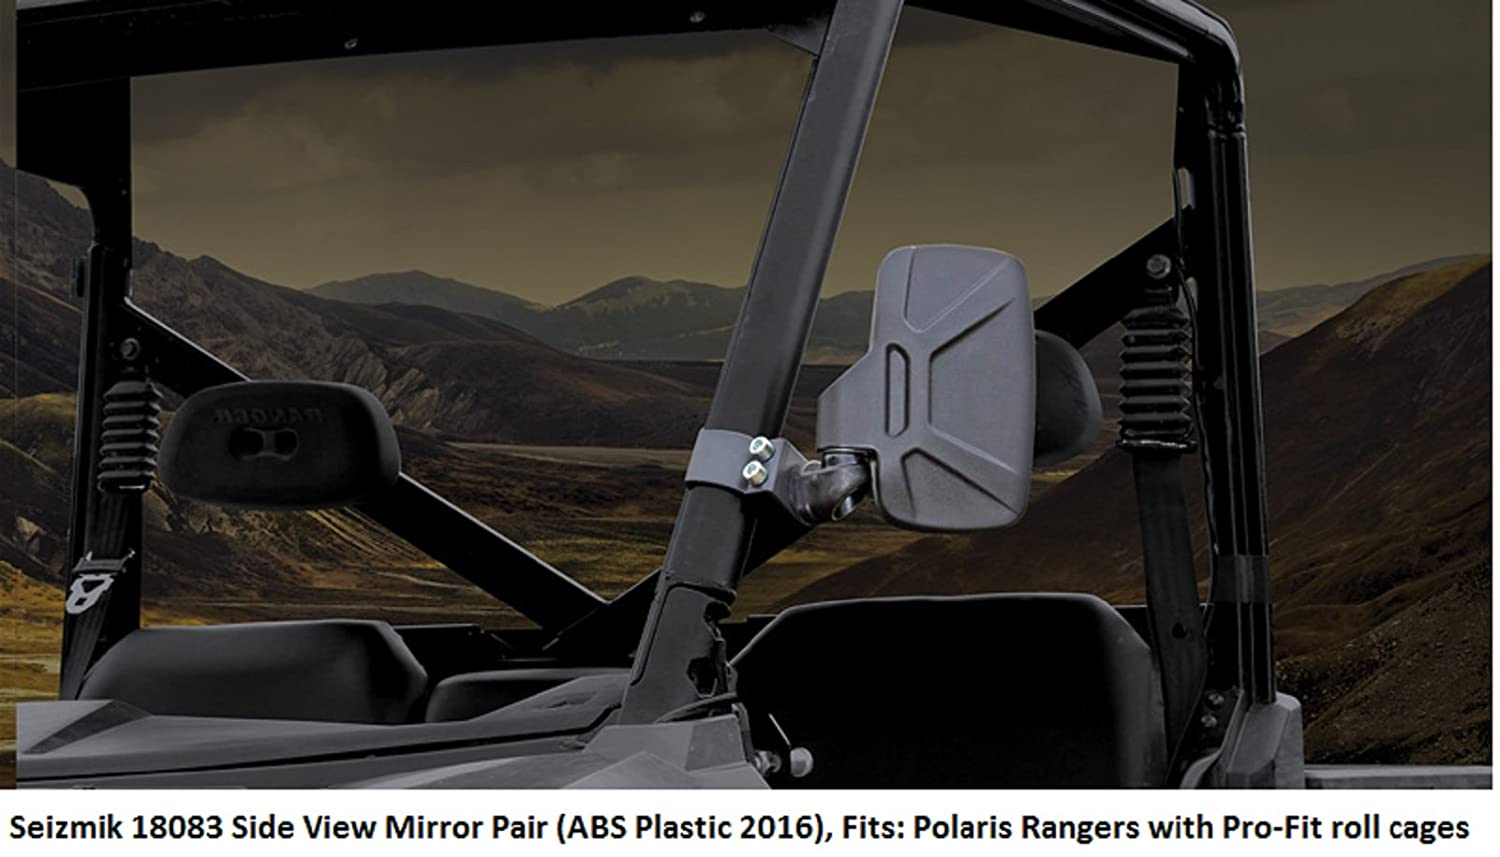 New Seizmik Inside Rear View Mirror Polaris Ranger XP 900 2011-2015